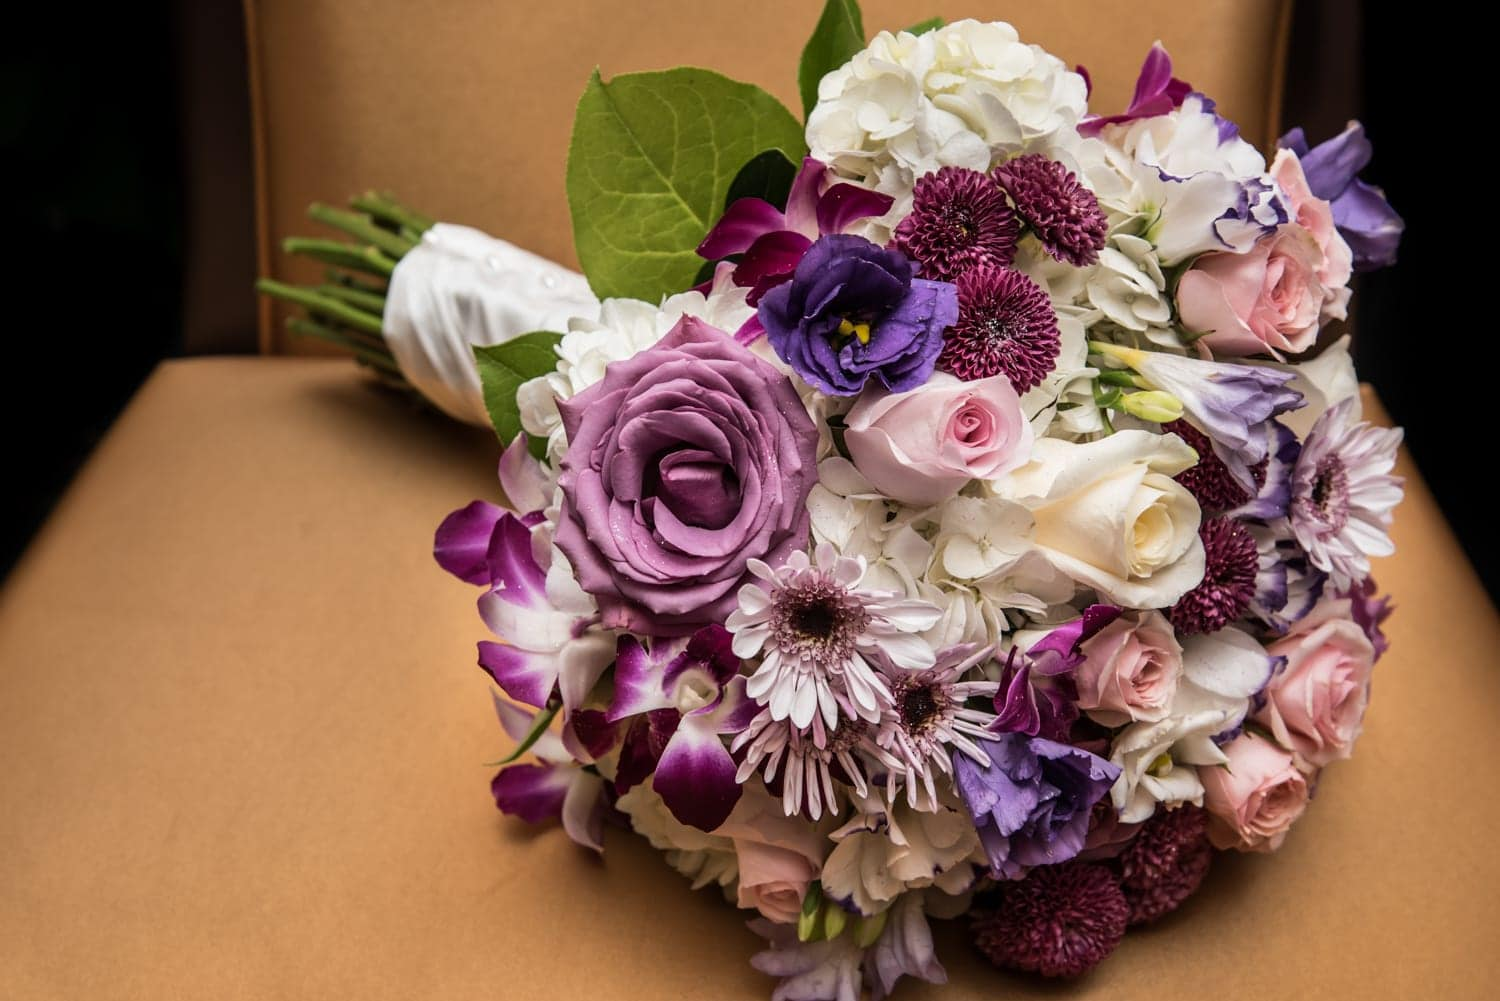 Real flowers in a wedding bridal bouquet of ivory, purple and pink flowers.